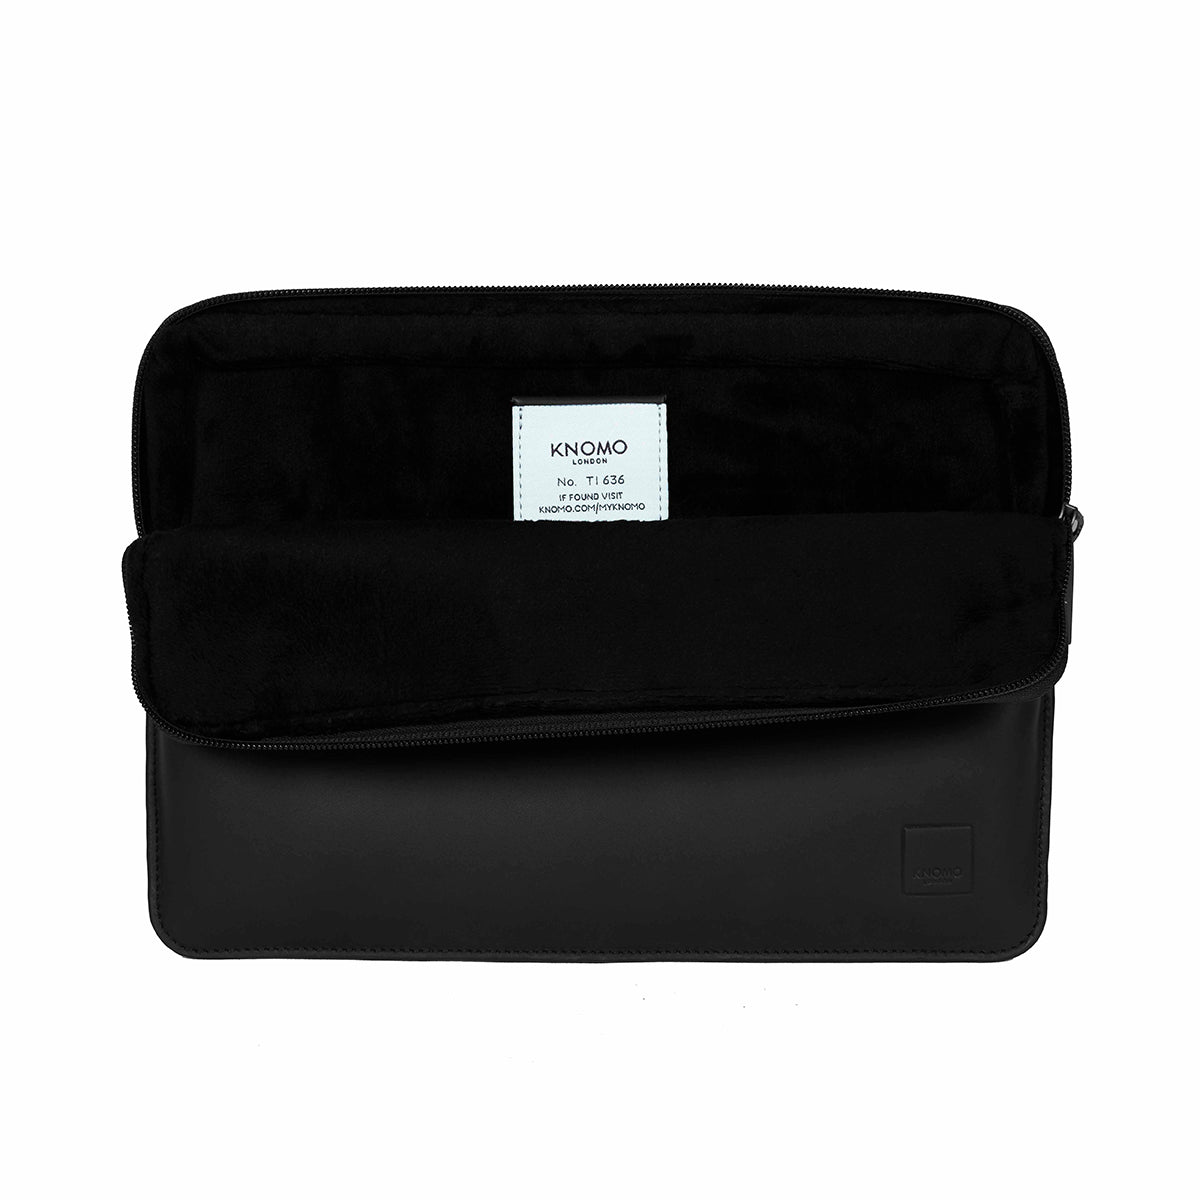 "Laptophülle MB 12"" Leather Laptop Sleeve - 12"" -  12"" 